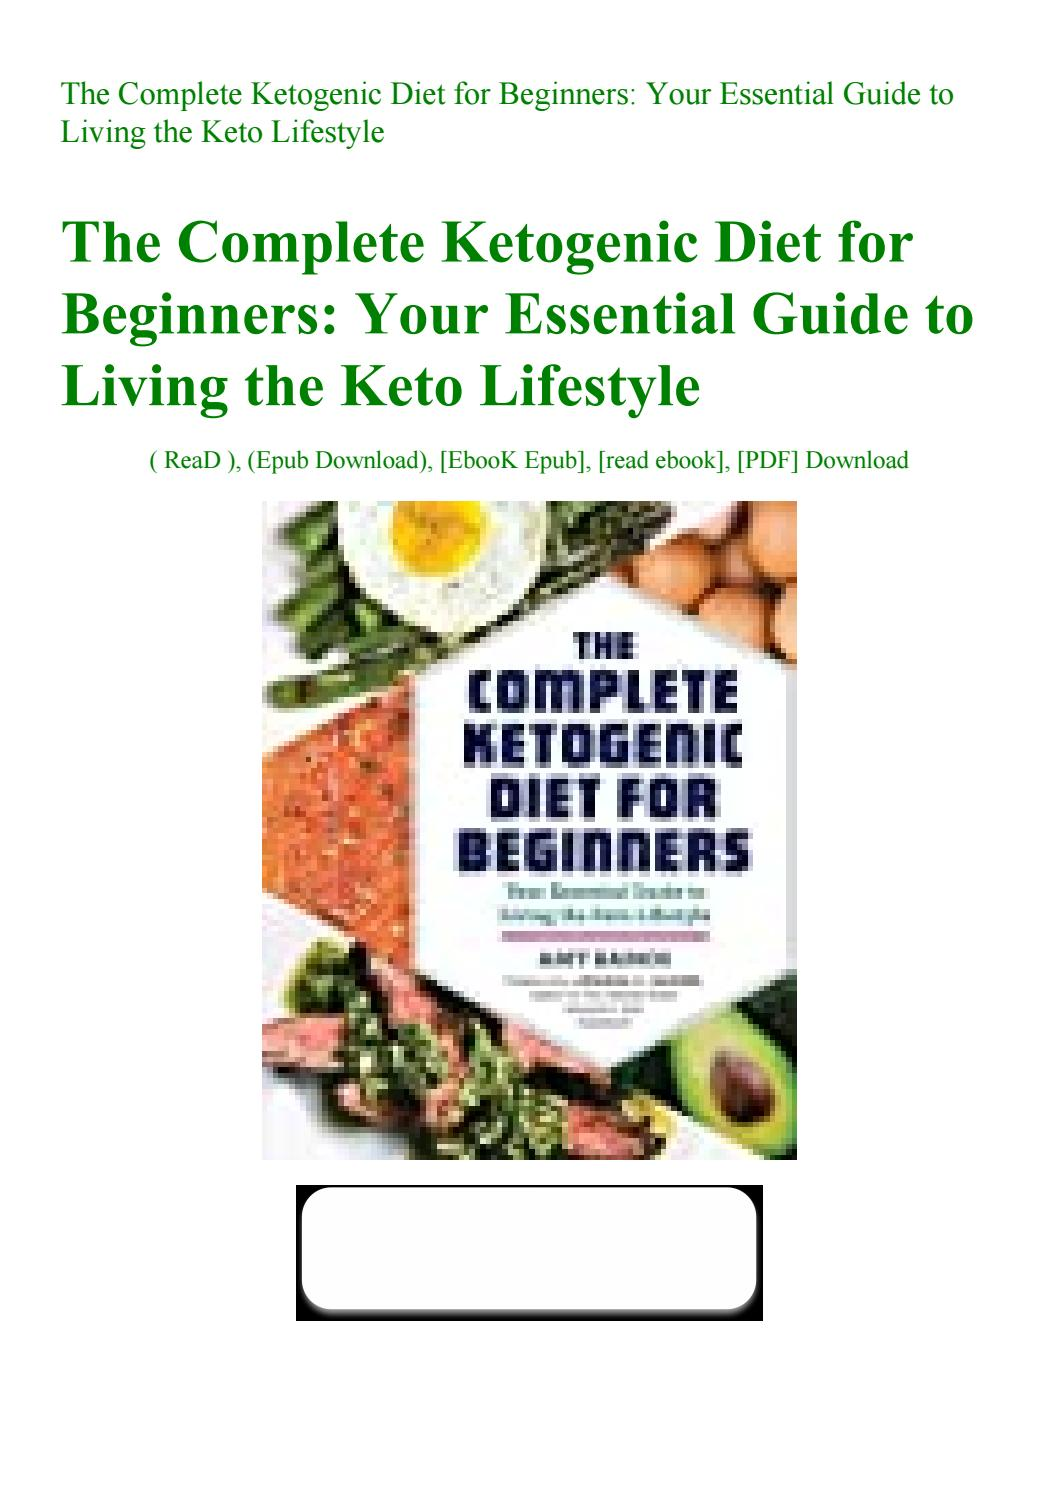 the complete ketogenic diet for beginners epub